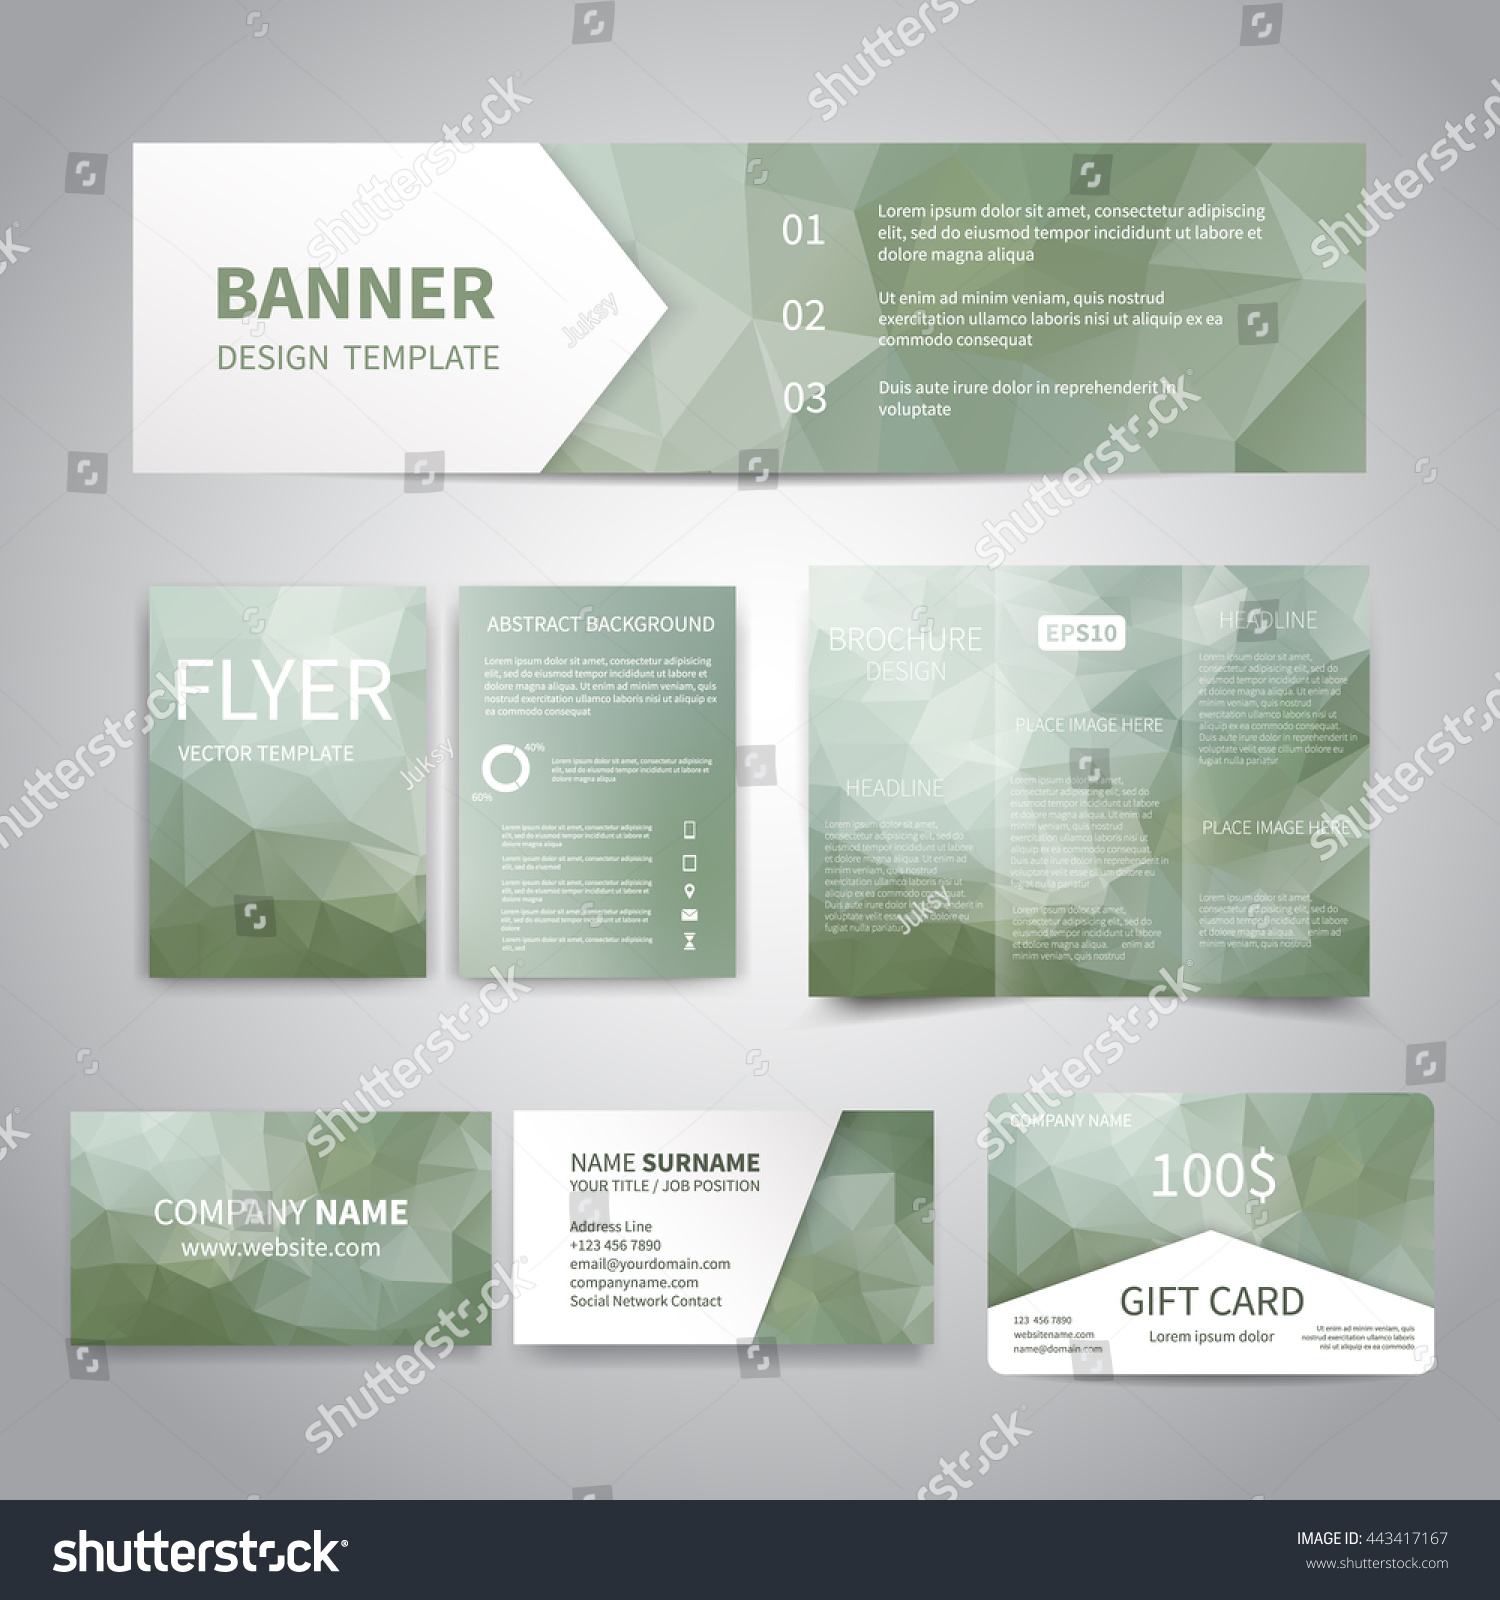 Banner flyers brochure business cards gift stock vector 443417167 banner flyers brochure business cards gift card design templates set with geometric reheart Gallery